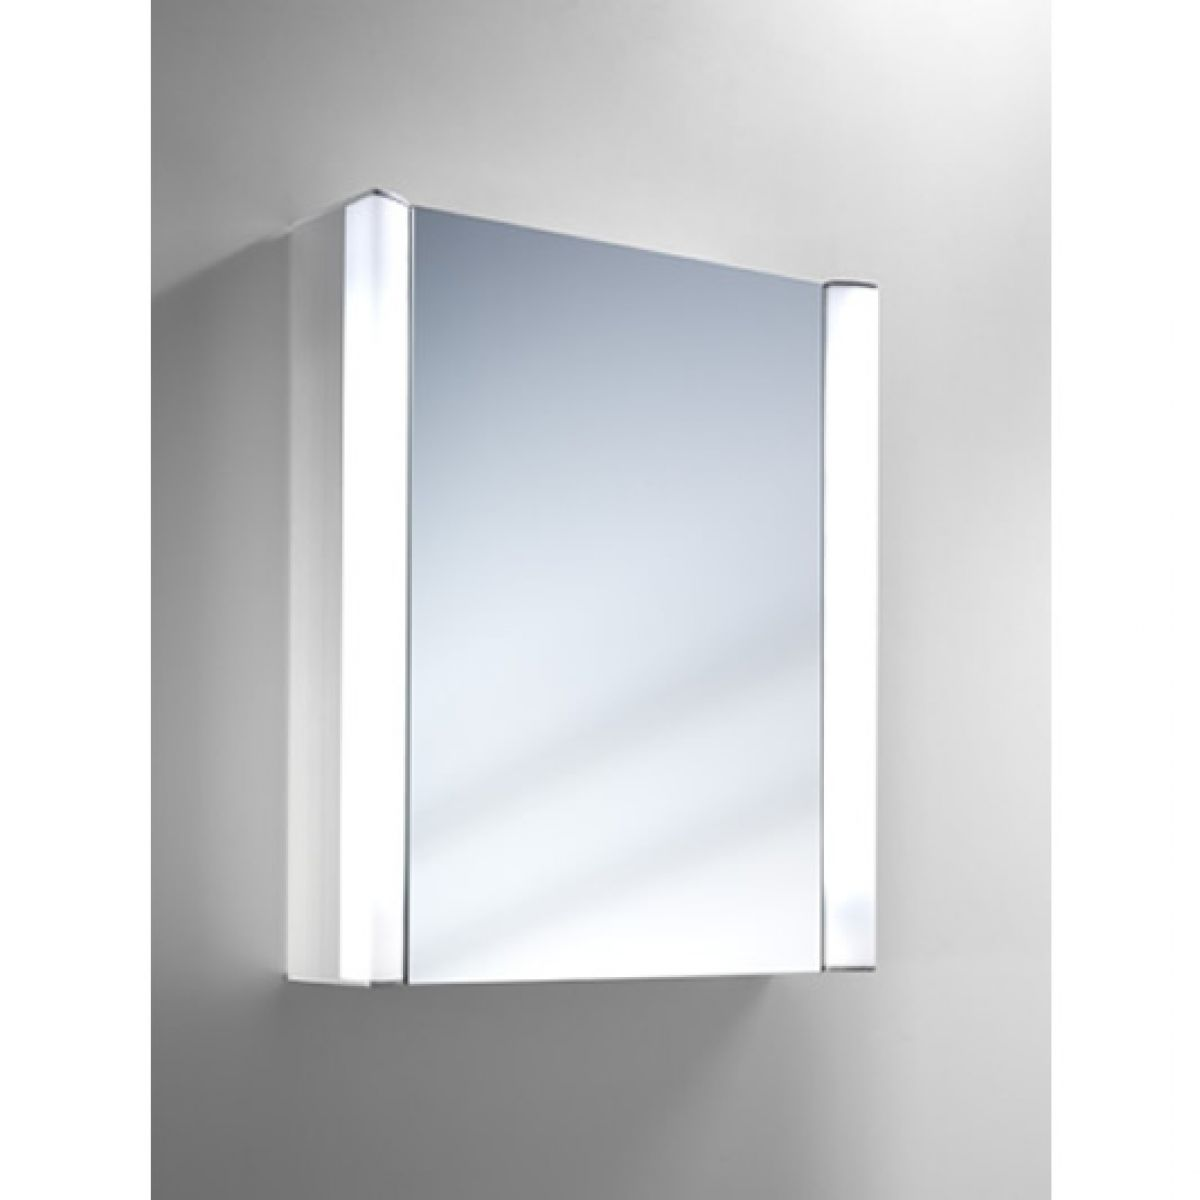 schneider moanaline 550mm illuminated cabinet uk bathrooms